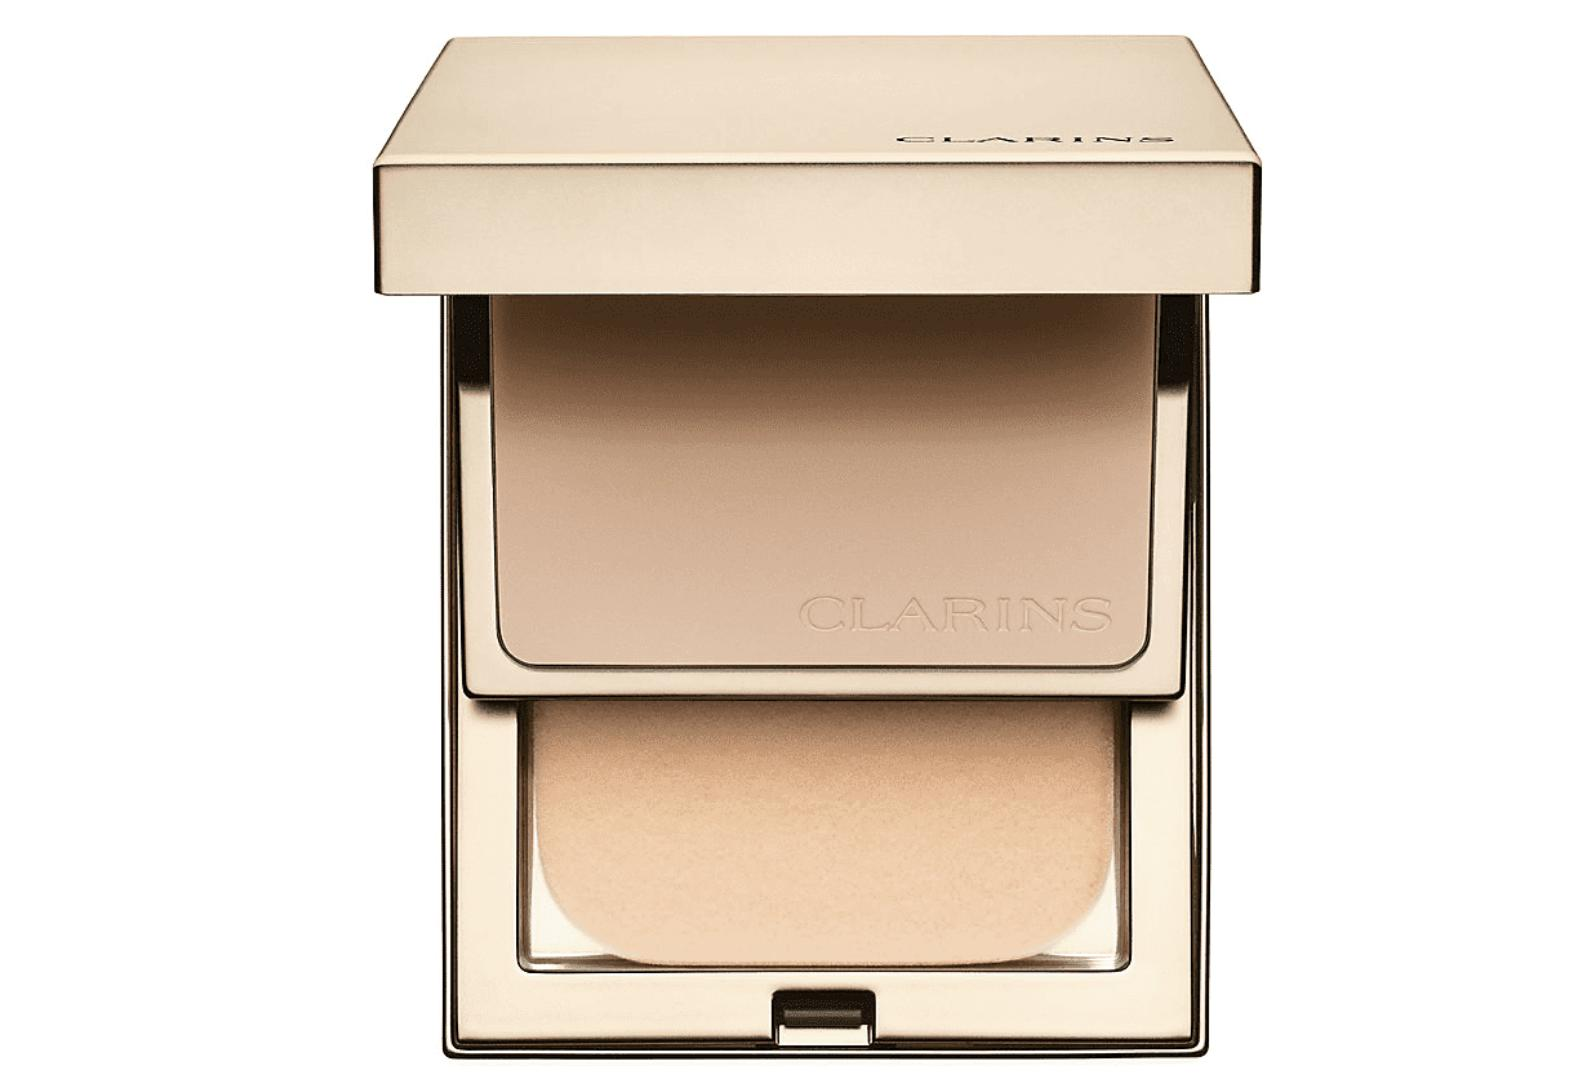 Clarins Everlasting Compact Foundation Honey 110